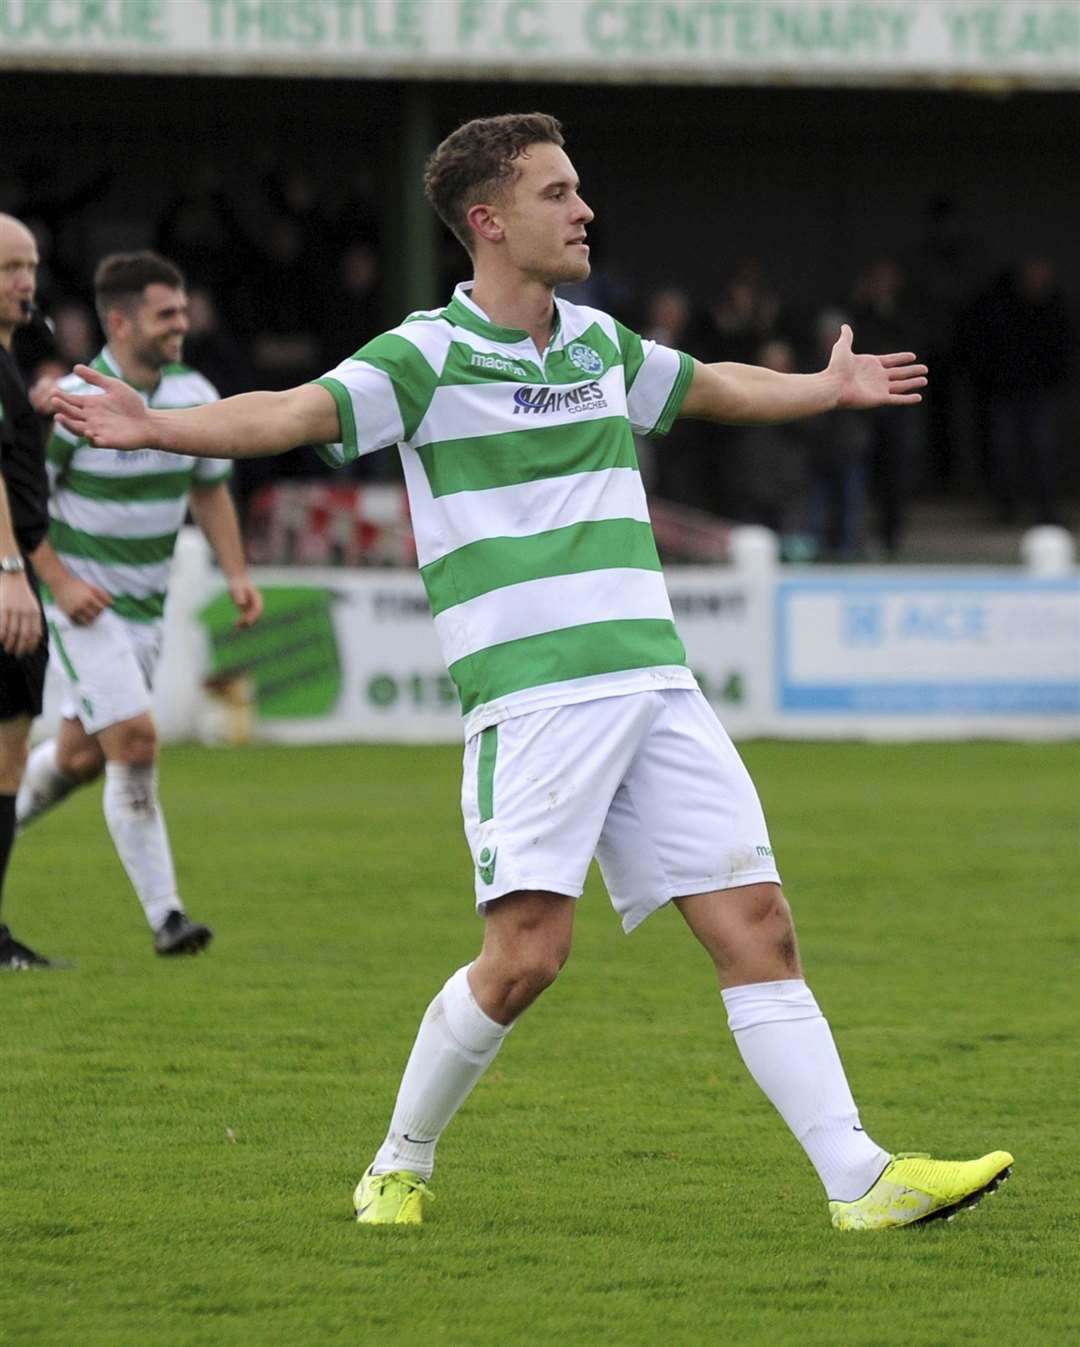 Scott Adams celebrates his stunning free kick goal against Forres at the weekend.